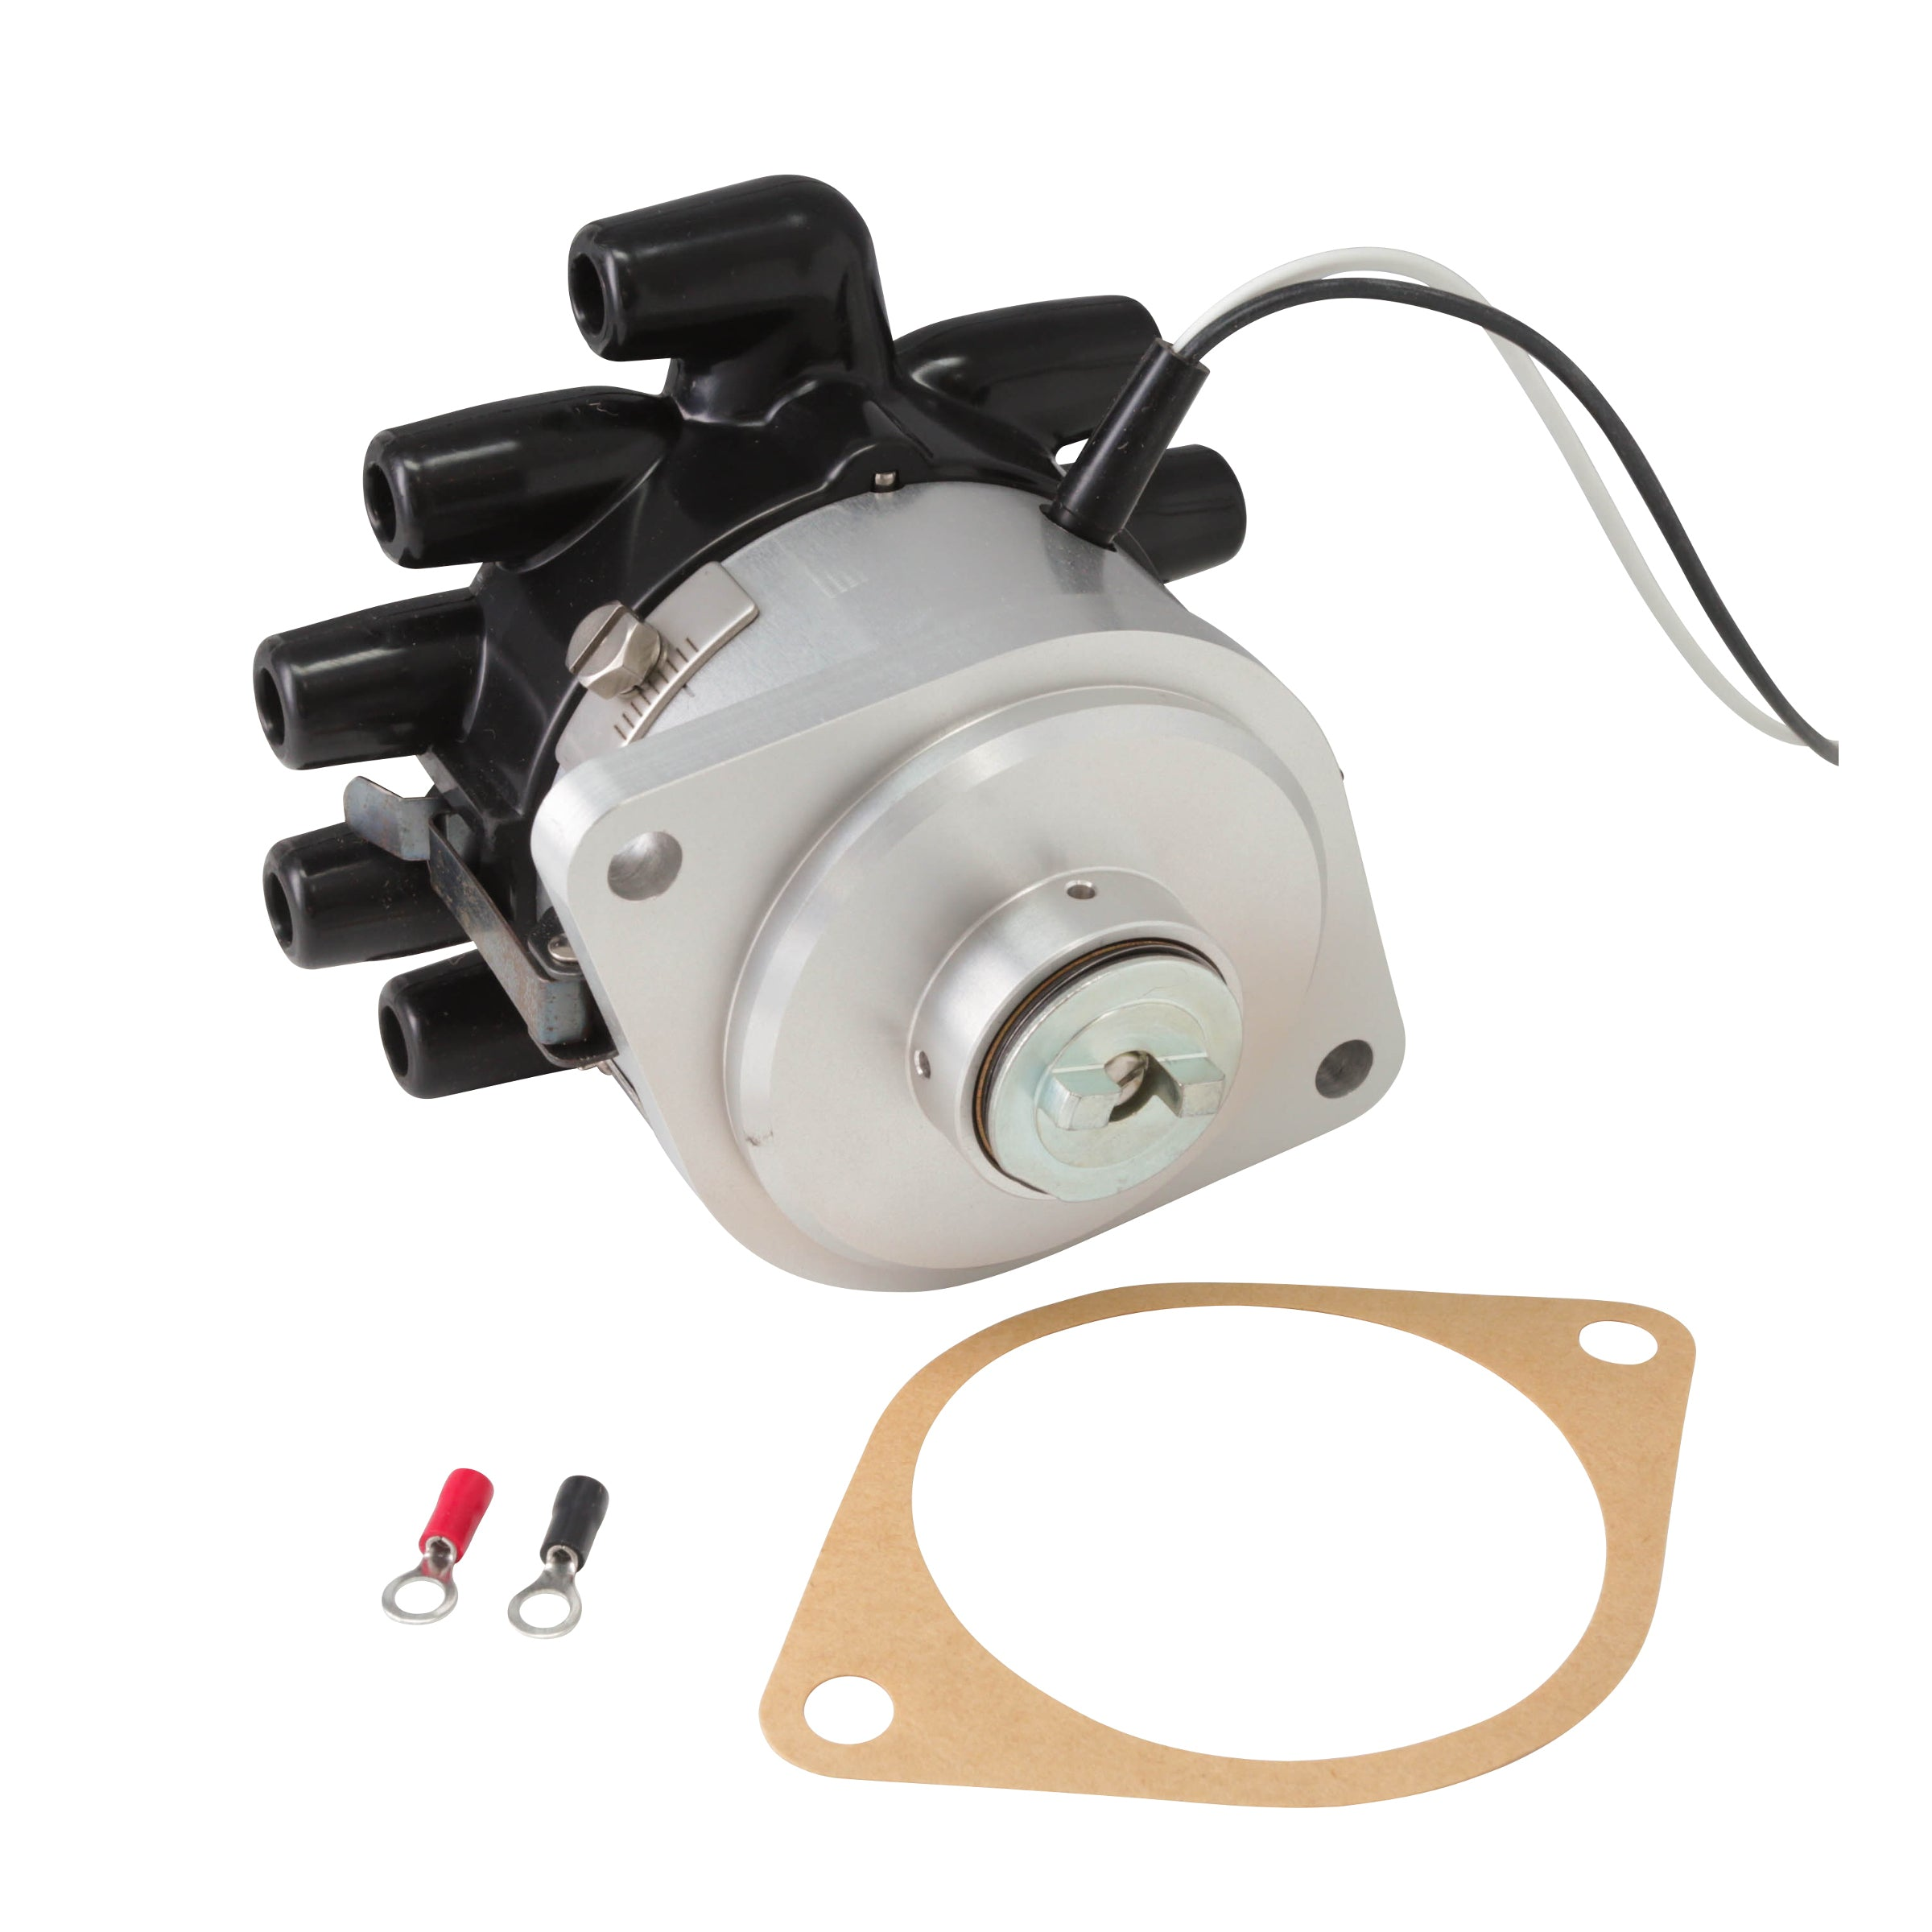 Genuine Stromberg E-Fire Electronic Distributor • 2 Bolt 12V Negative